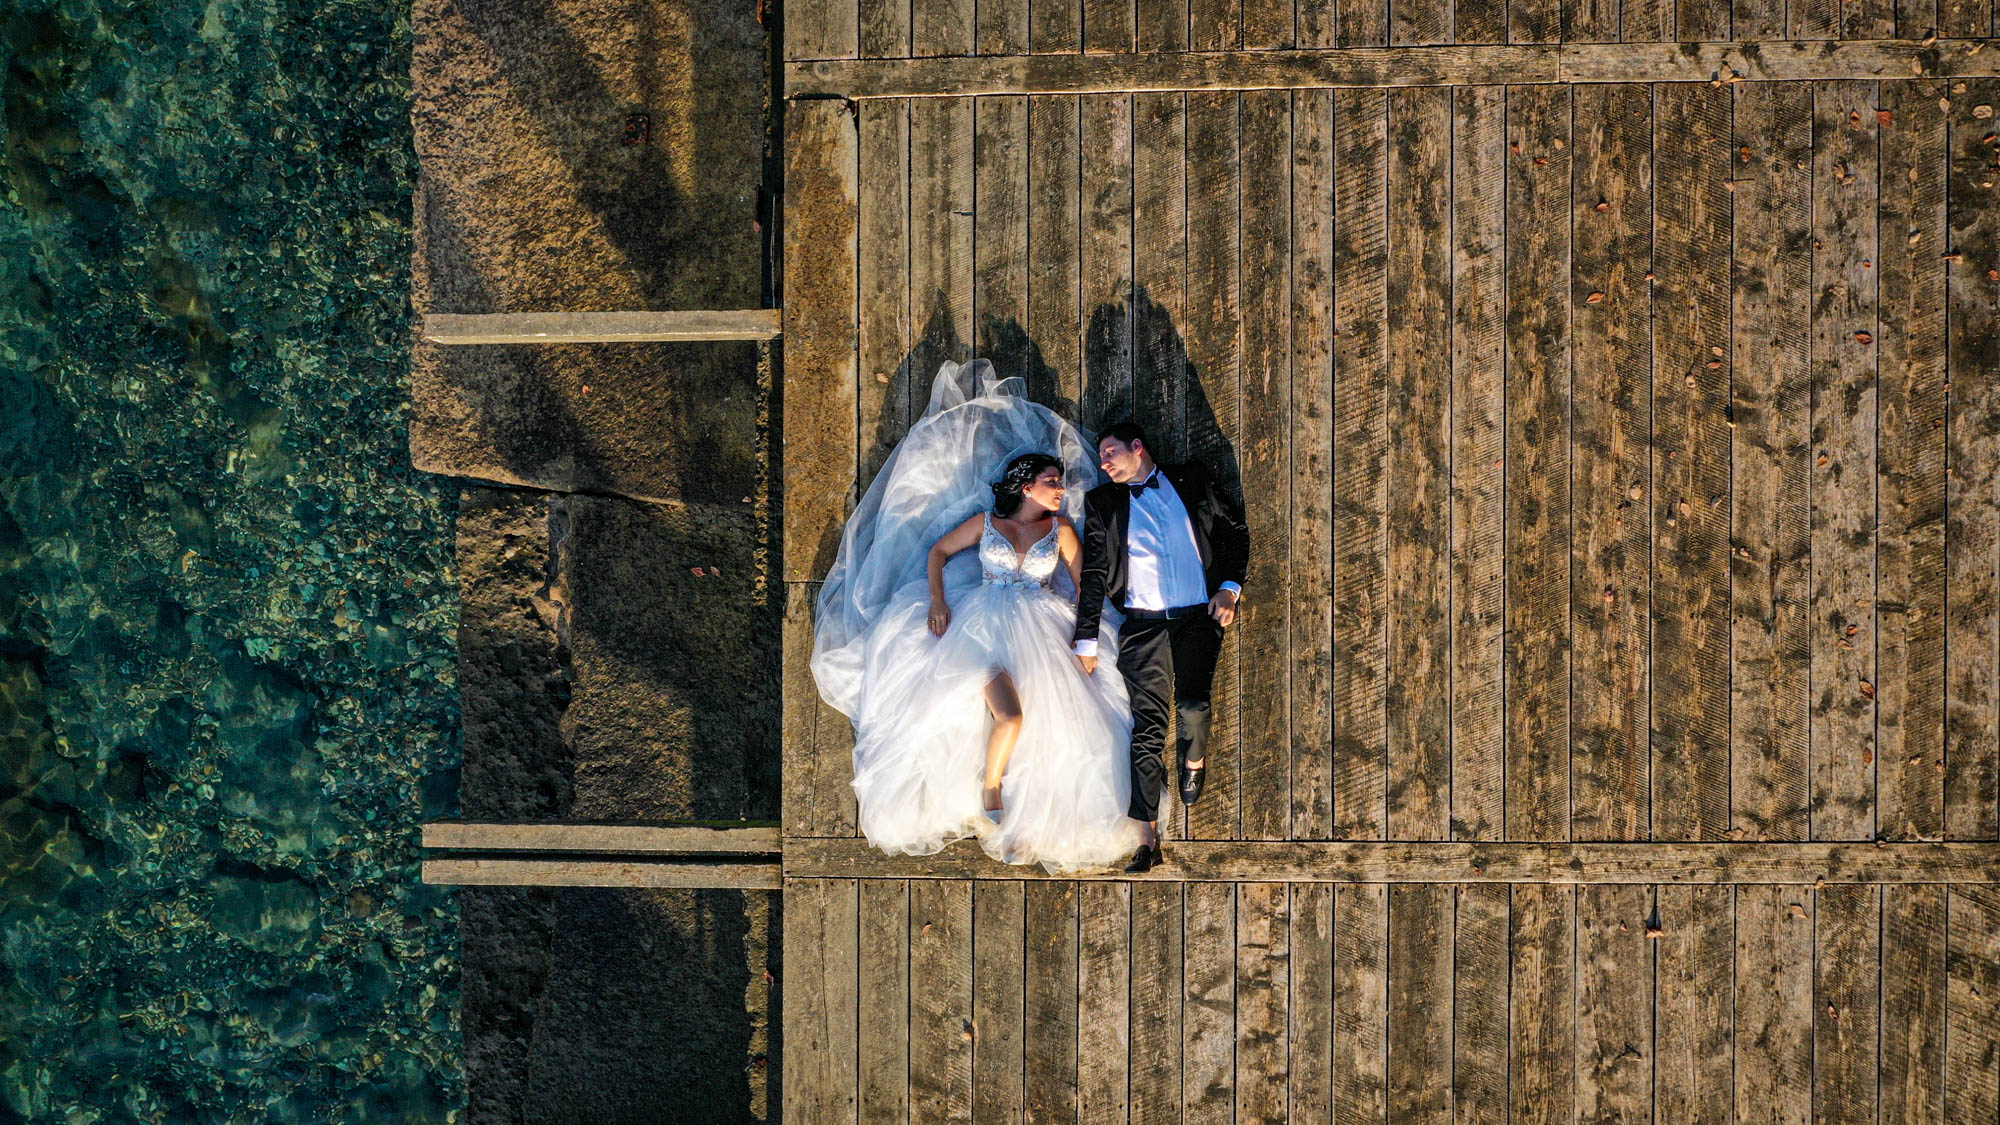 Photo of a bride and groom taken from above by drone